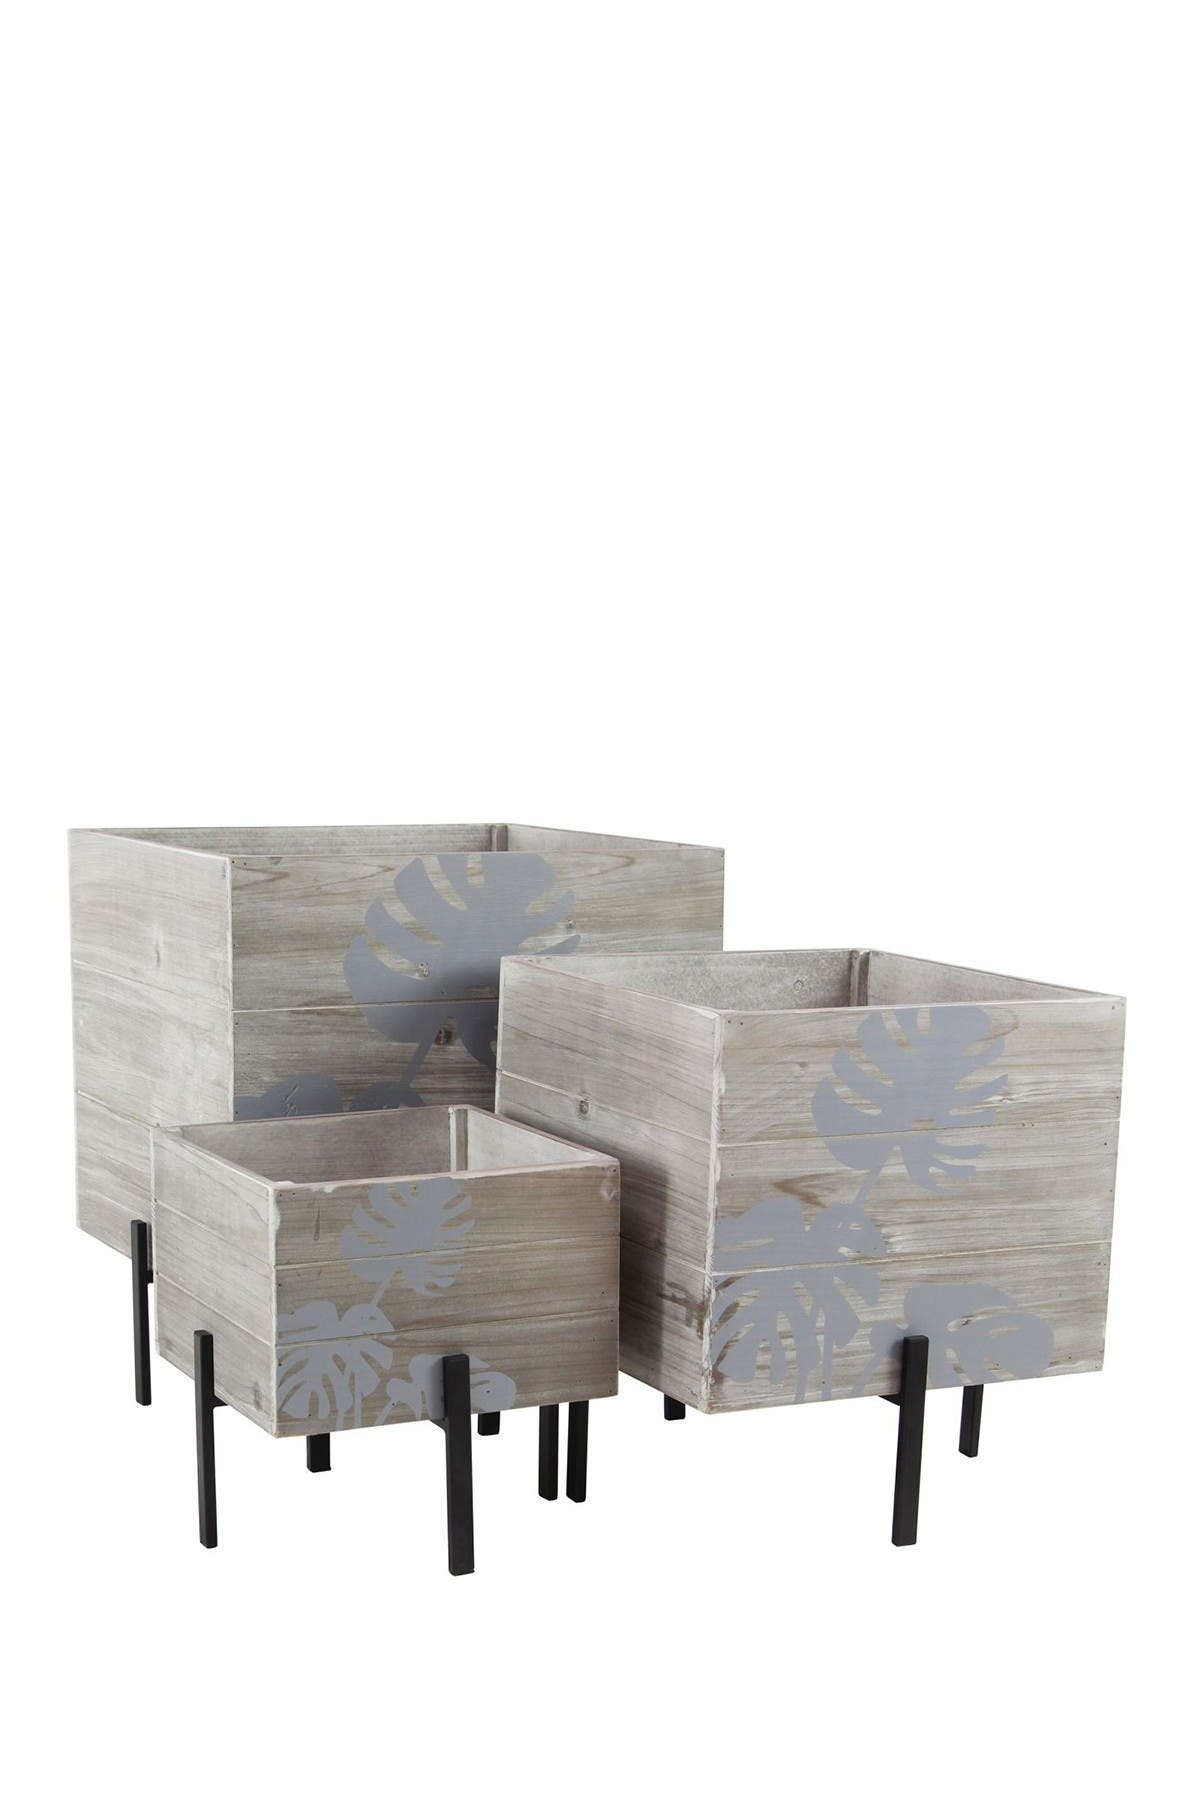 Image of Willow Row Brown Rustic Iron Cube Standing Planter - Set of 3